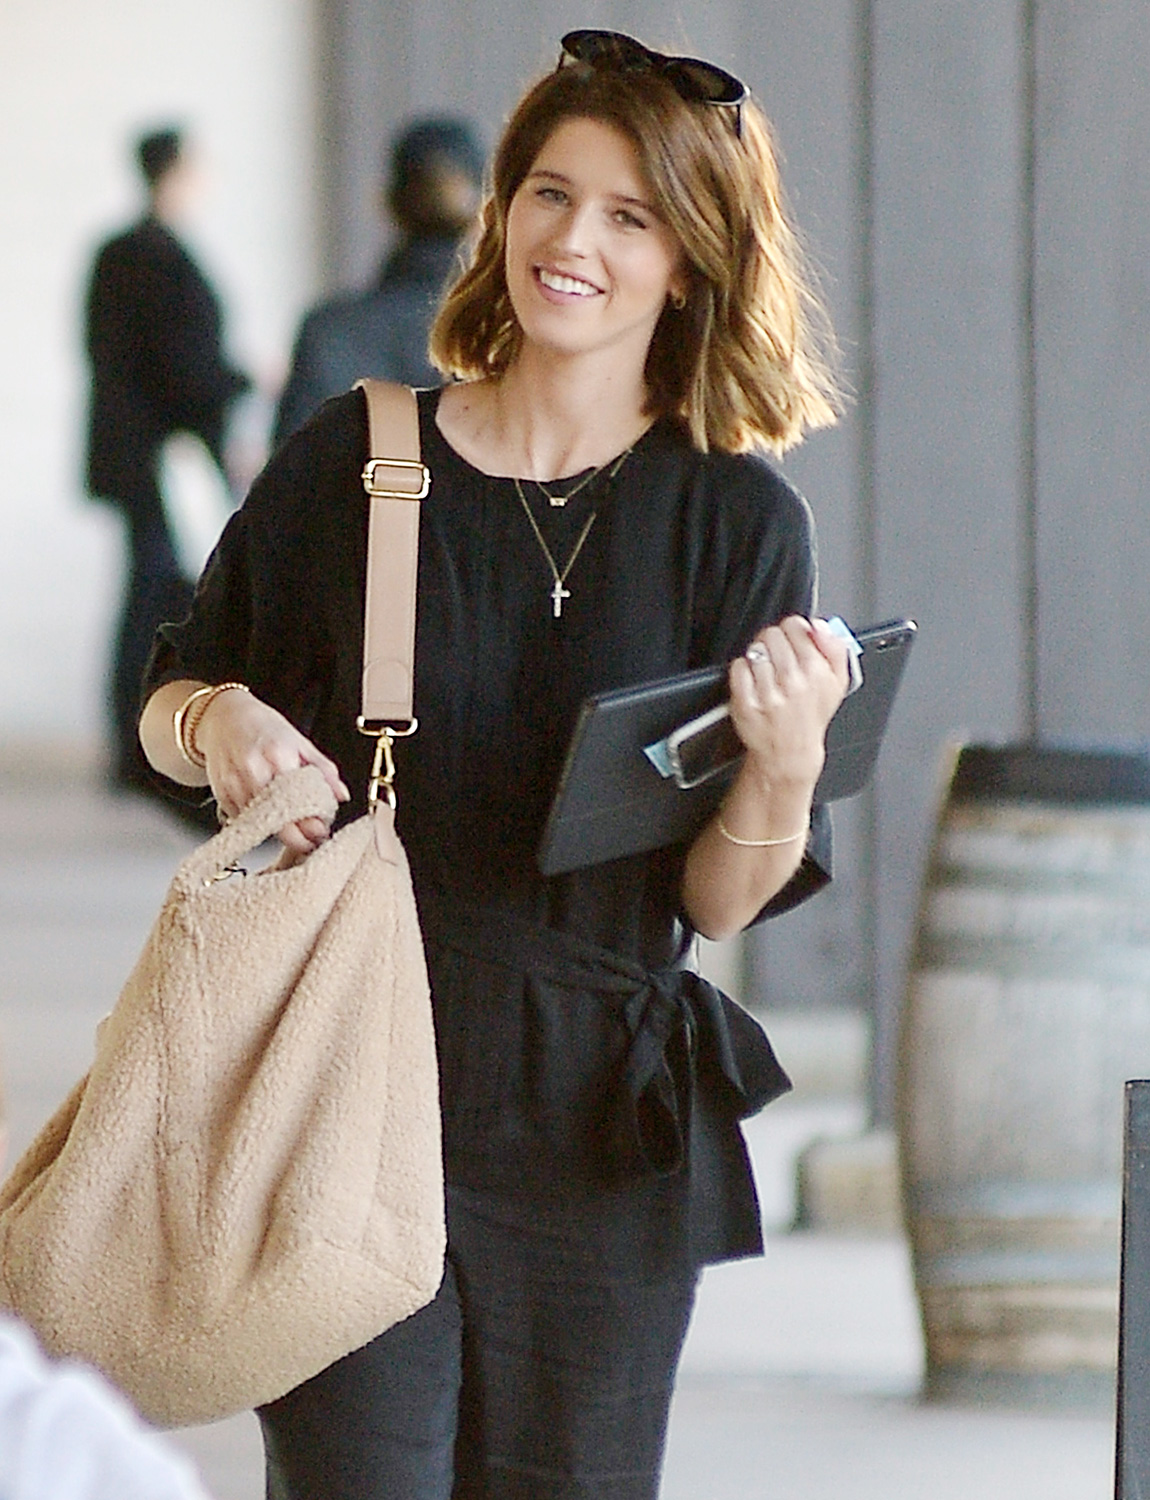 Katherine Schwarzenegger is all smiles as she heads to a business meeting in Los Angeles